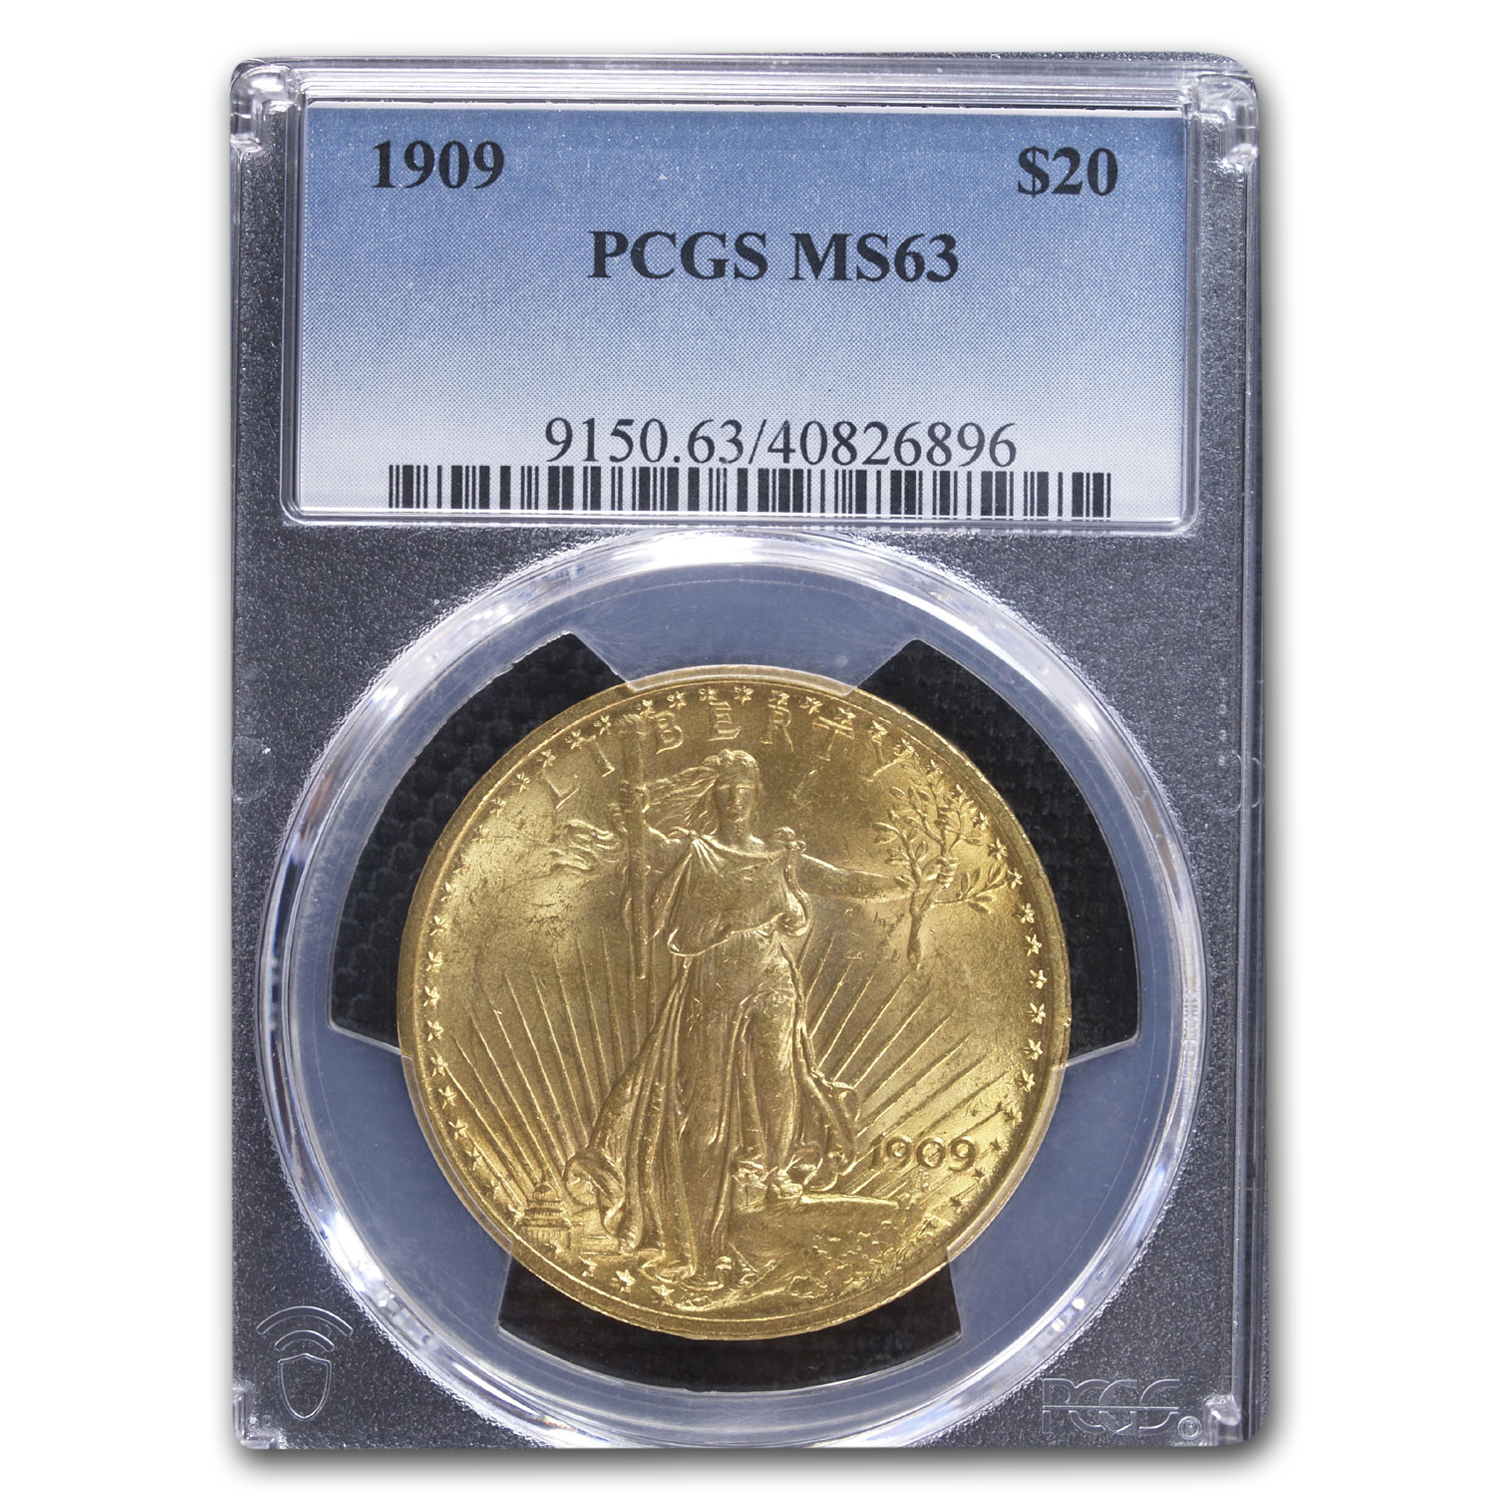 1909 $20 St. Gaudens Gold Double Eagle MS-63 PCGS